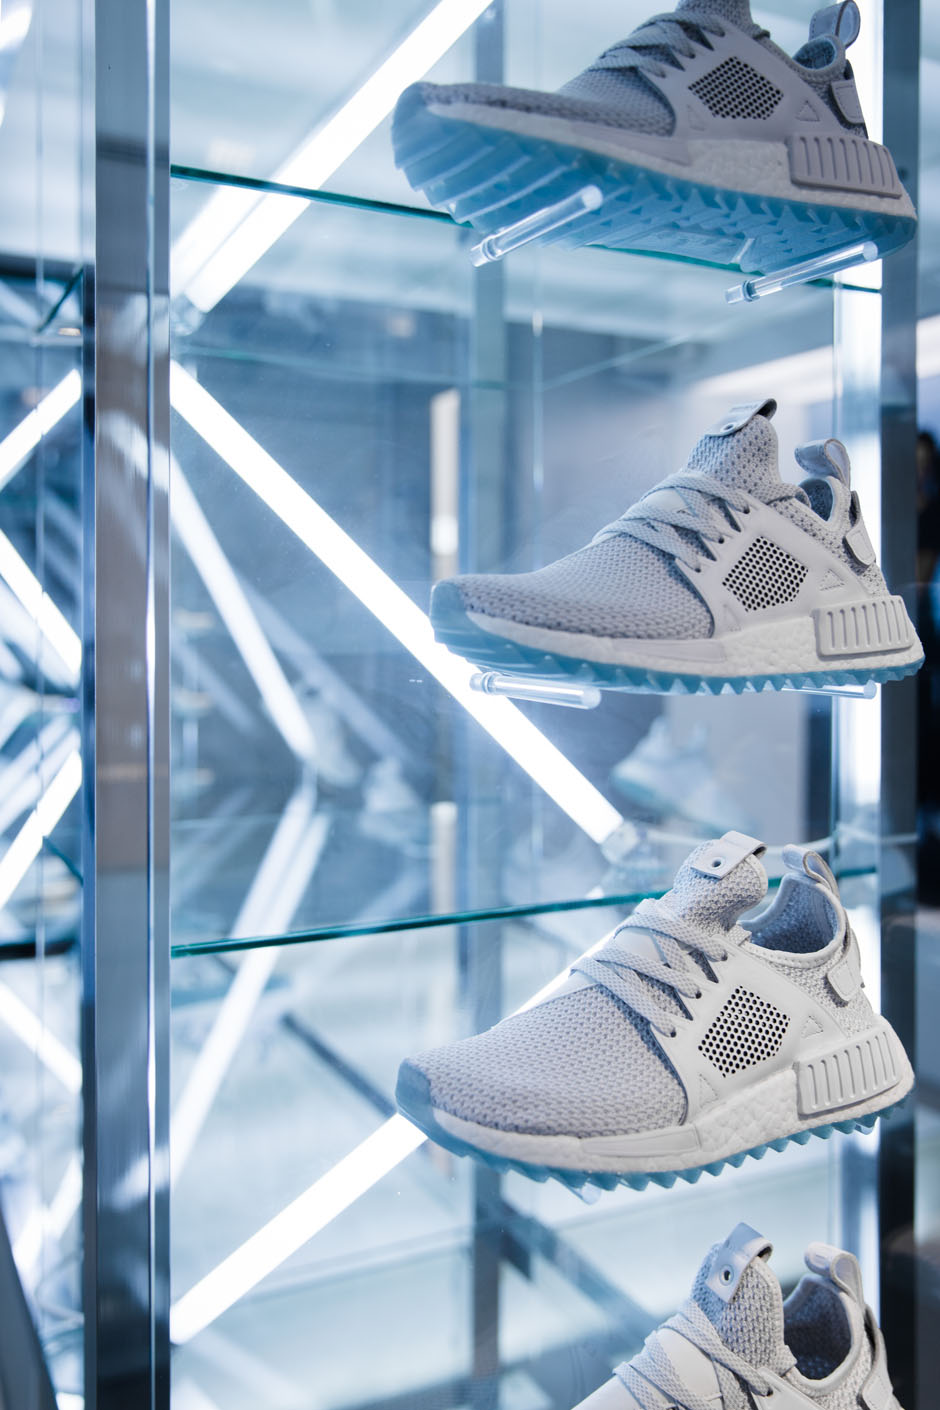 Titolo x adidas nmd rt tracce celestial3